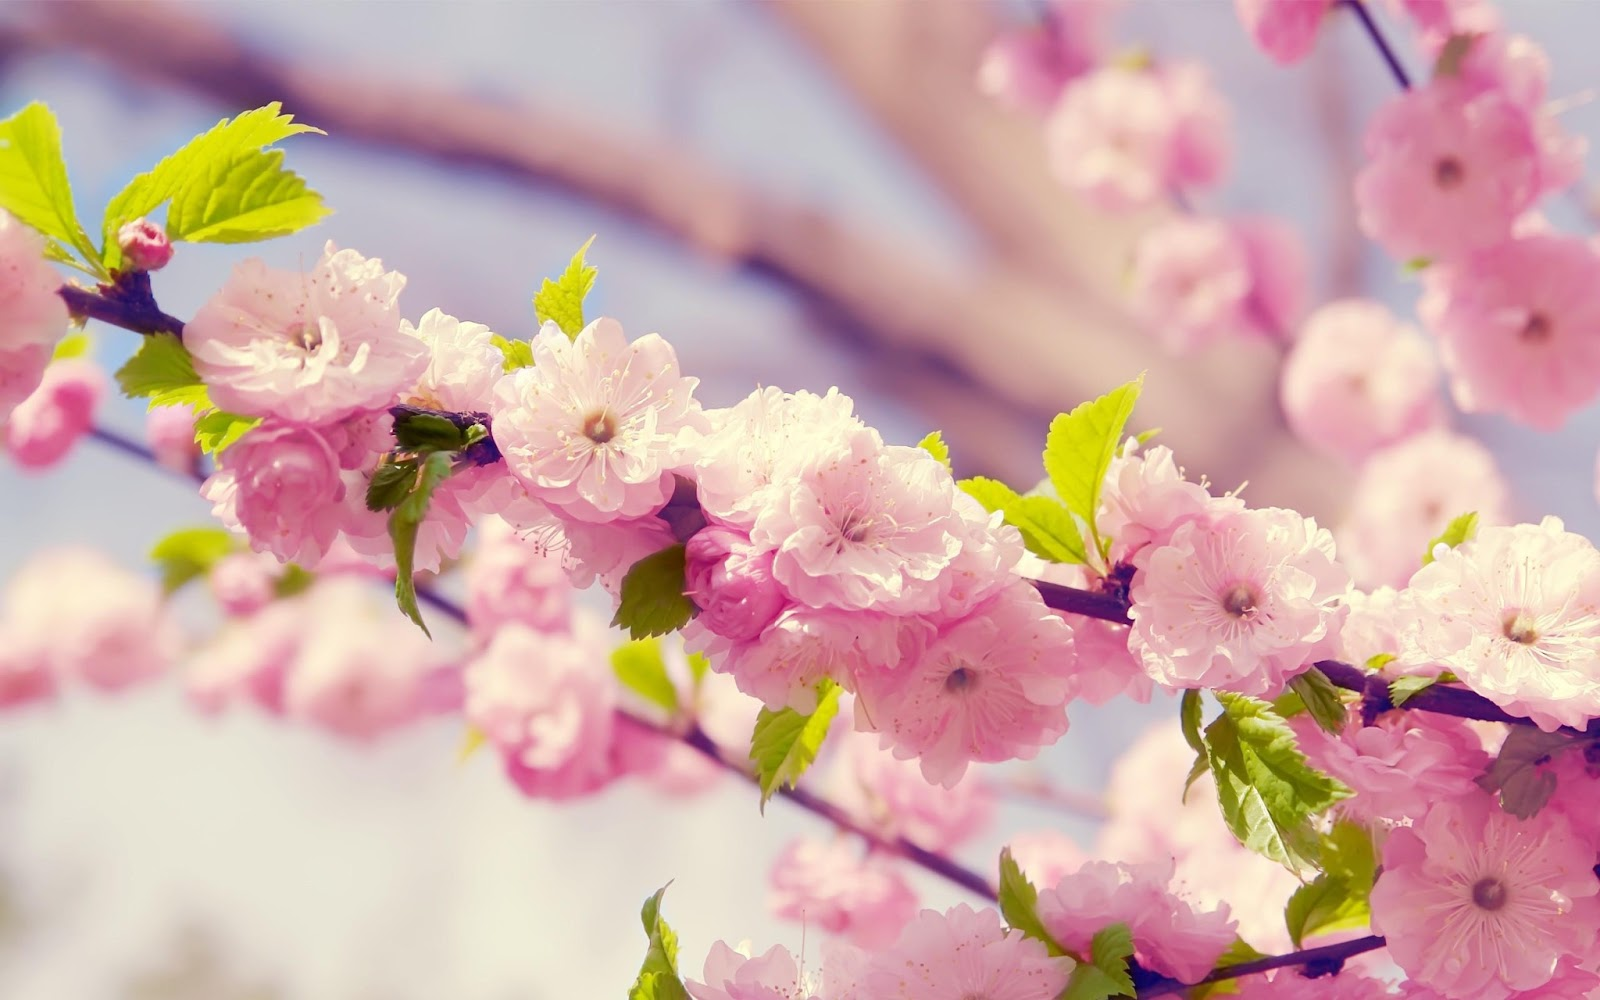 Pink-Cute-Flowers-Desktop-HD-Wallpapers.jpg